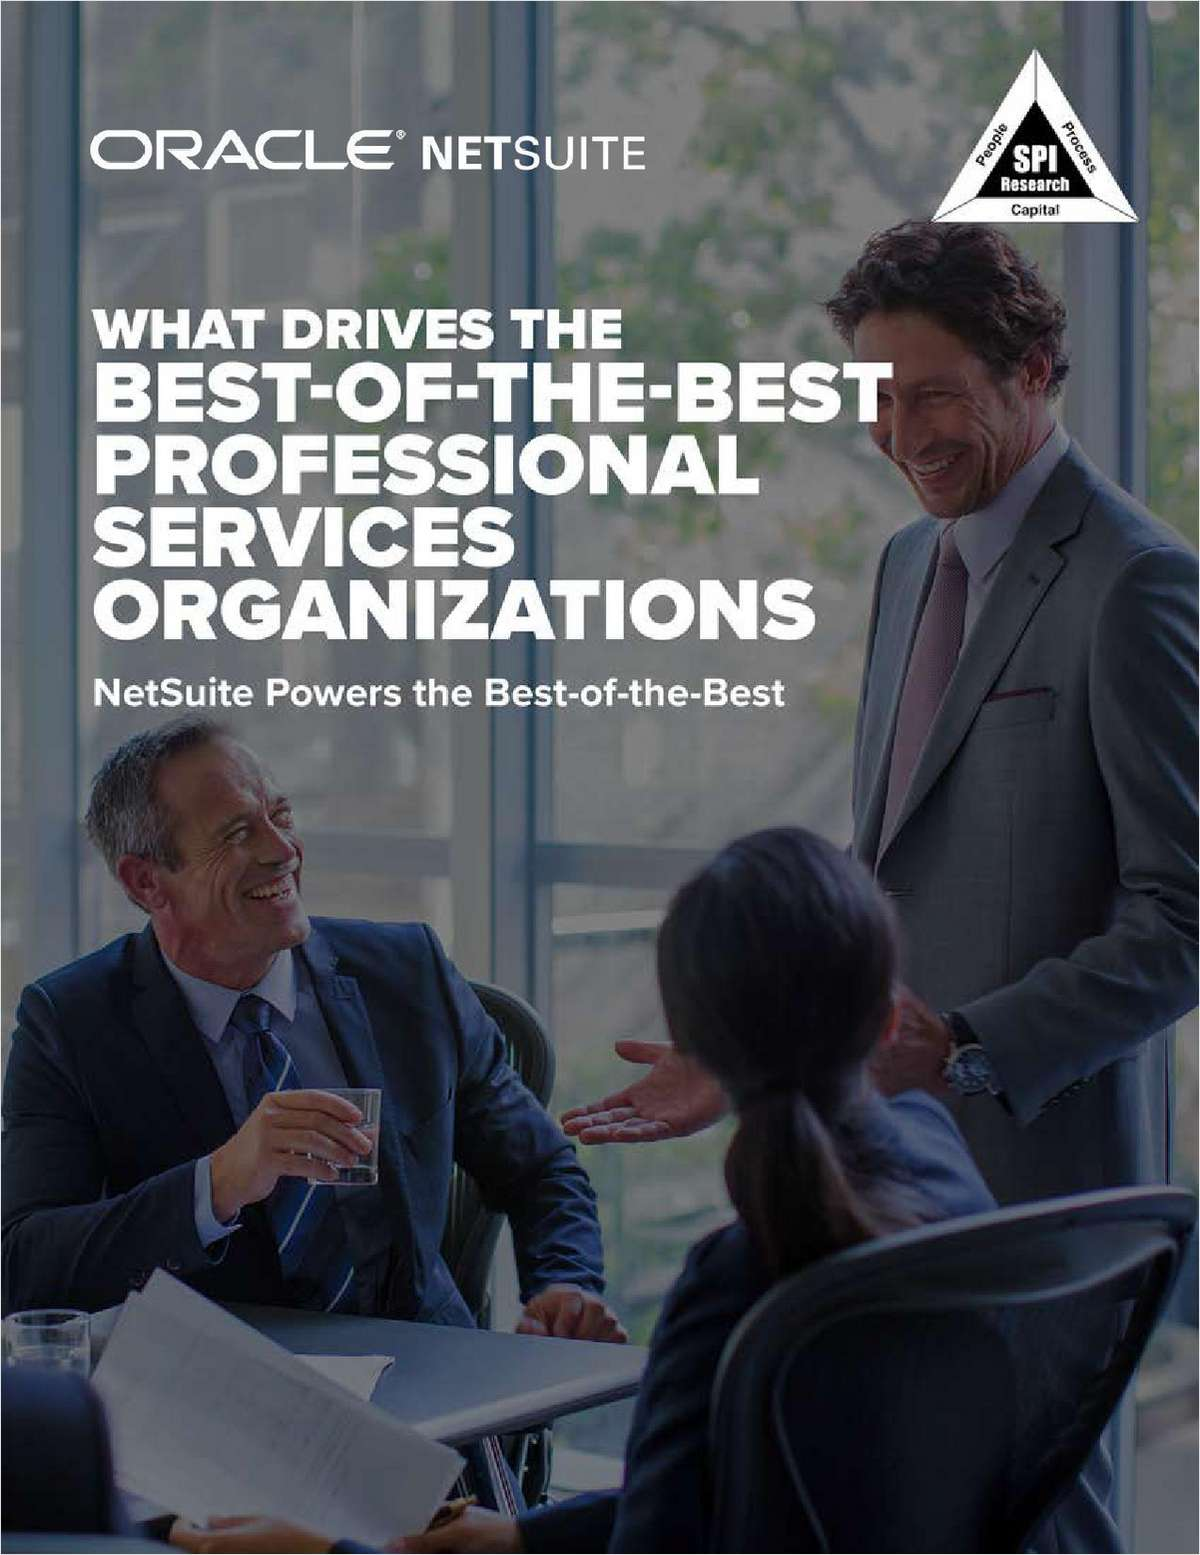 NetSuite Powers the Best-of- the Best Professional Services Organizations